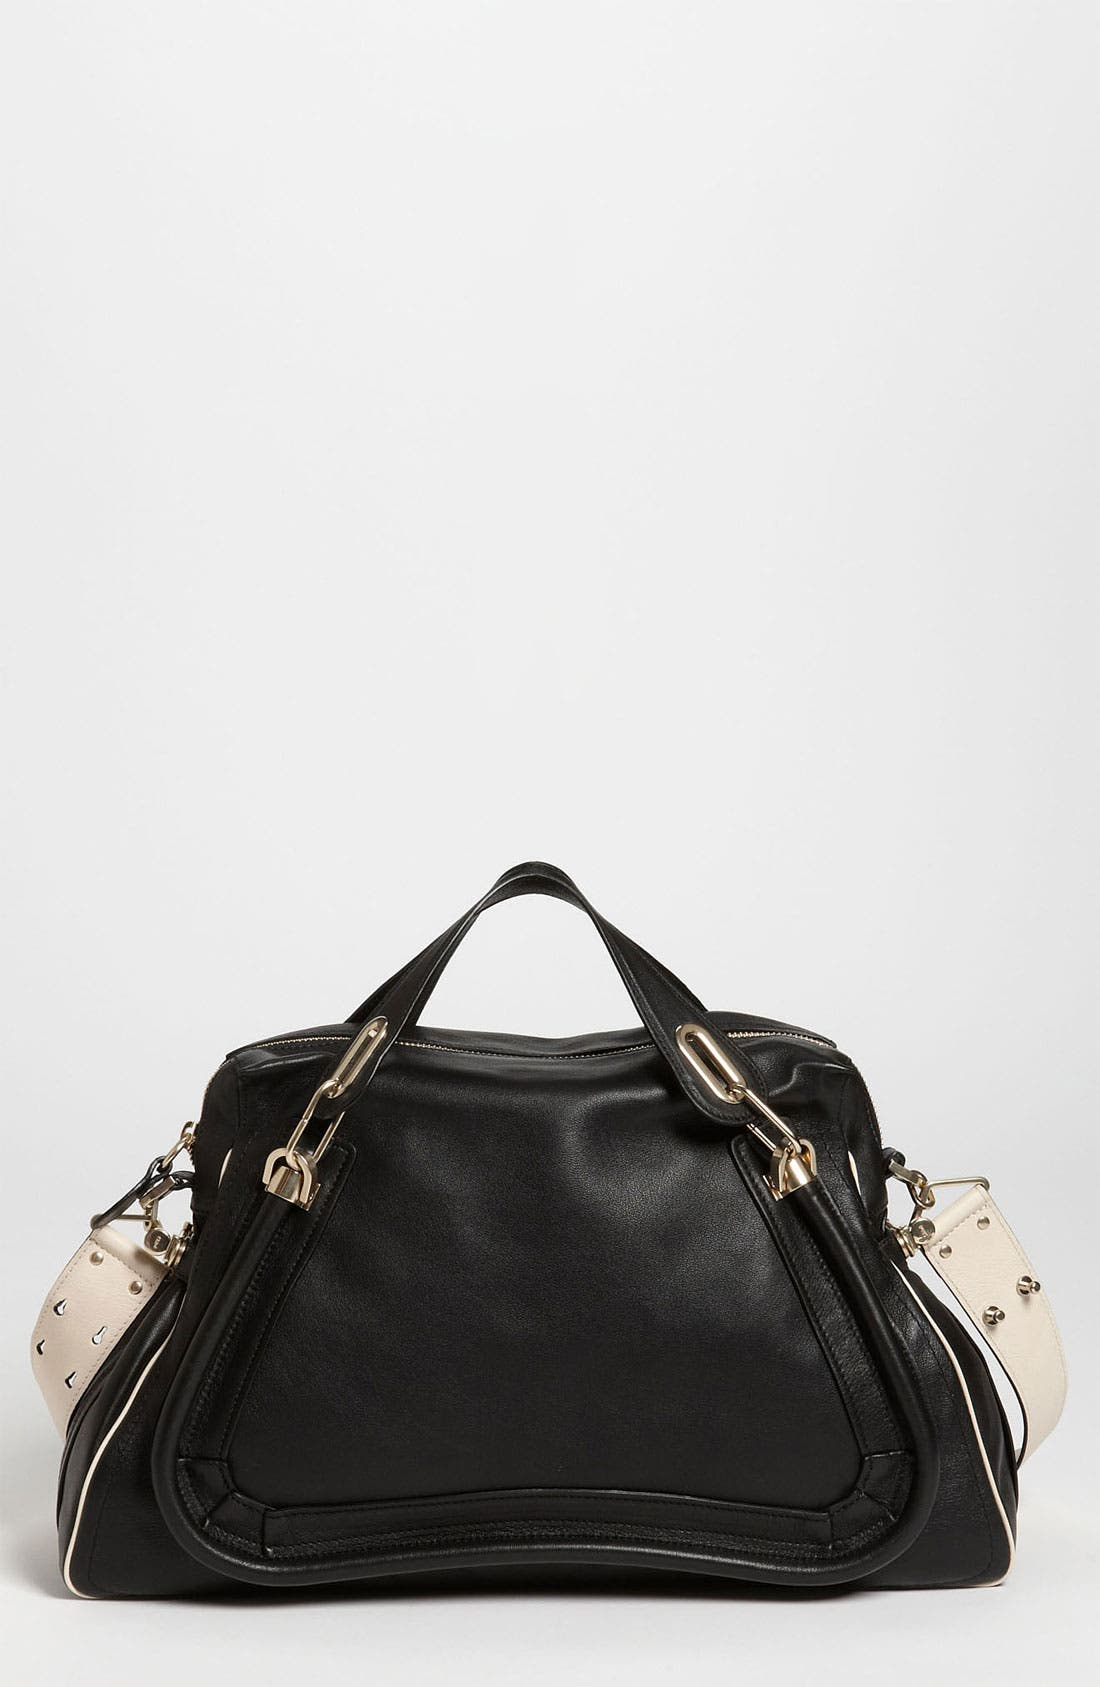 Main Image - Chloé 'Military Paraty - Large' Leather Satchel